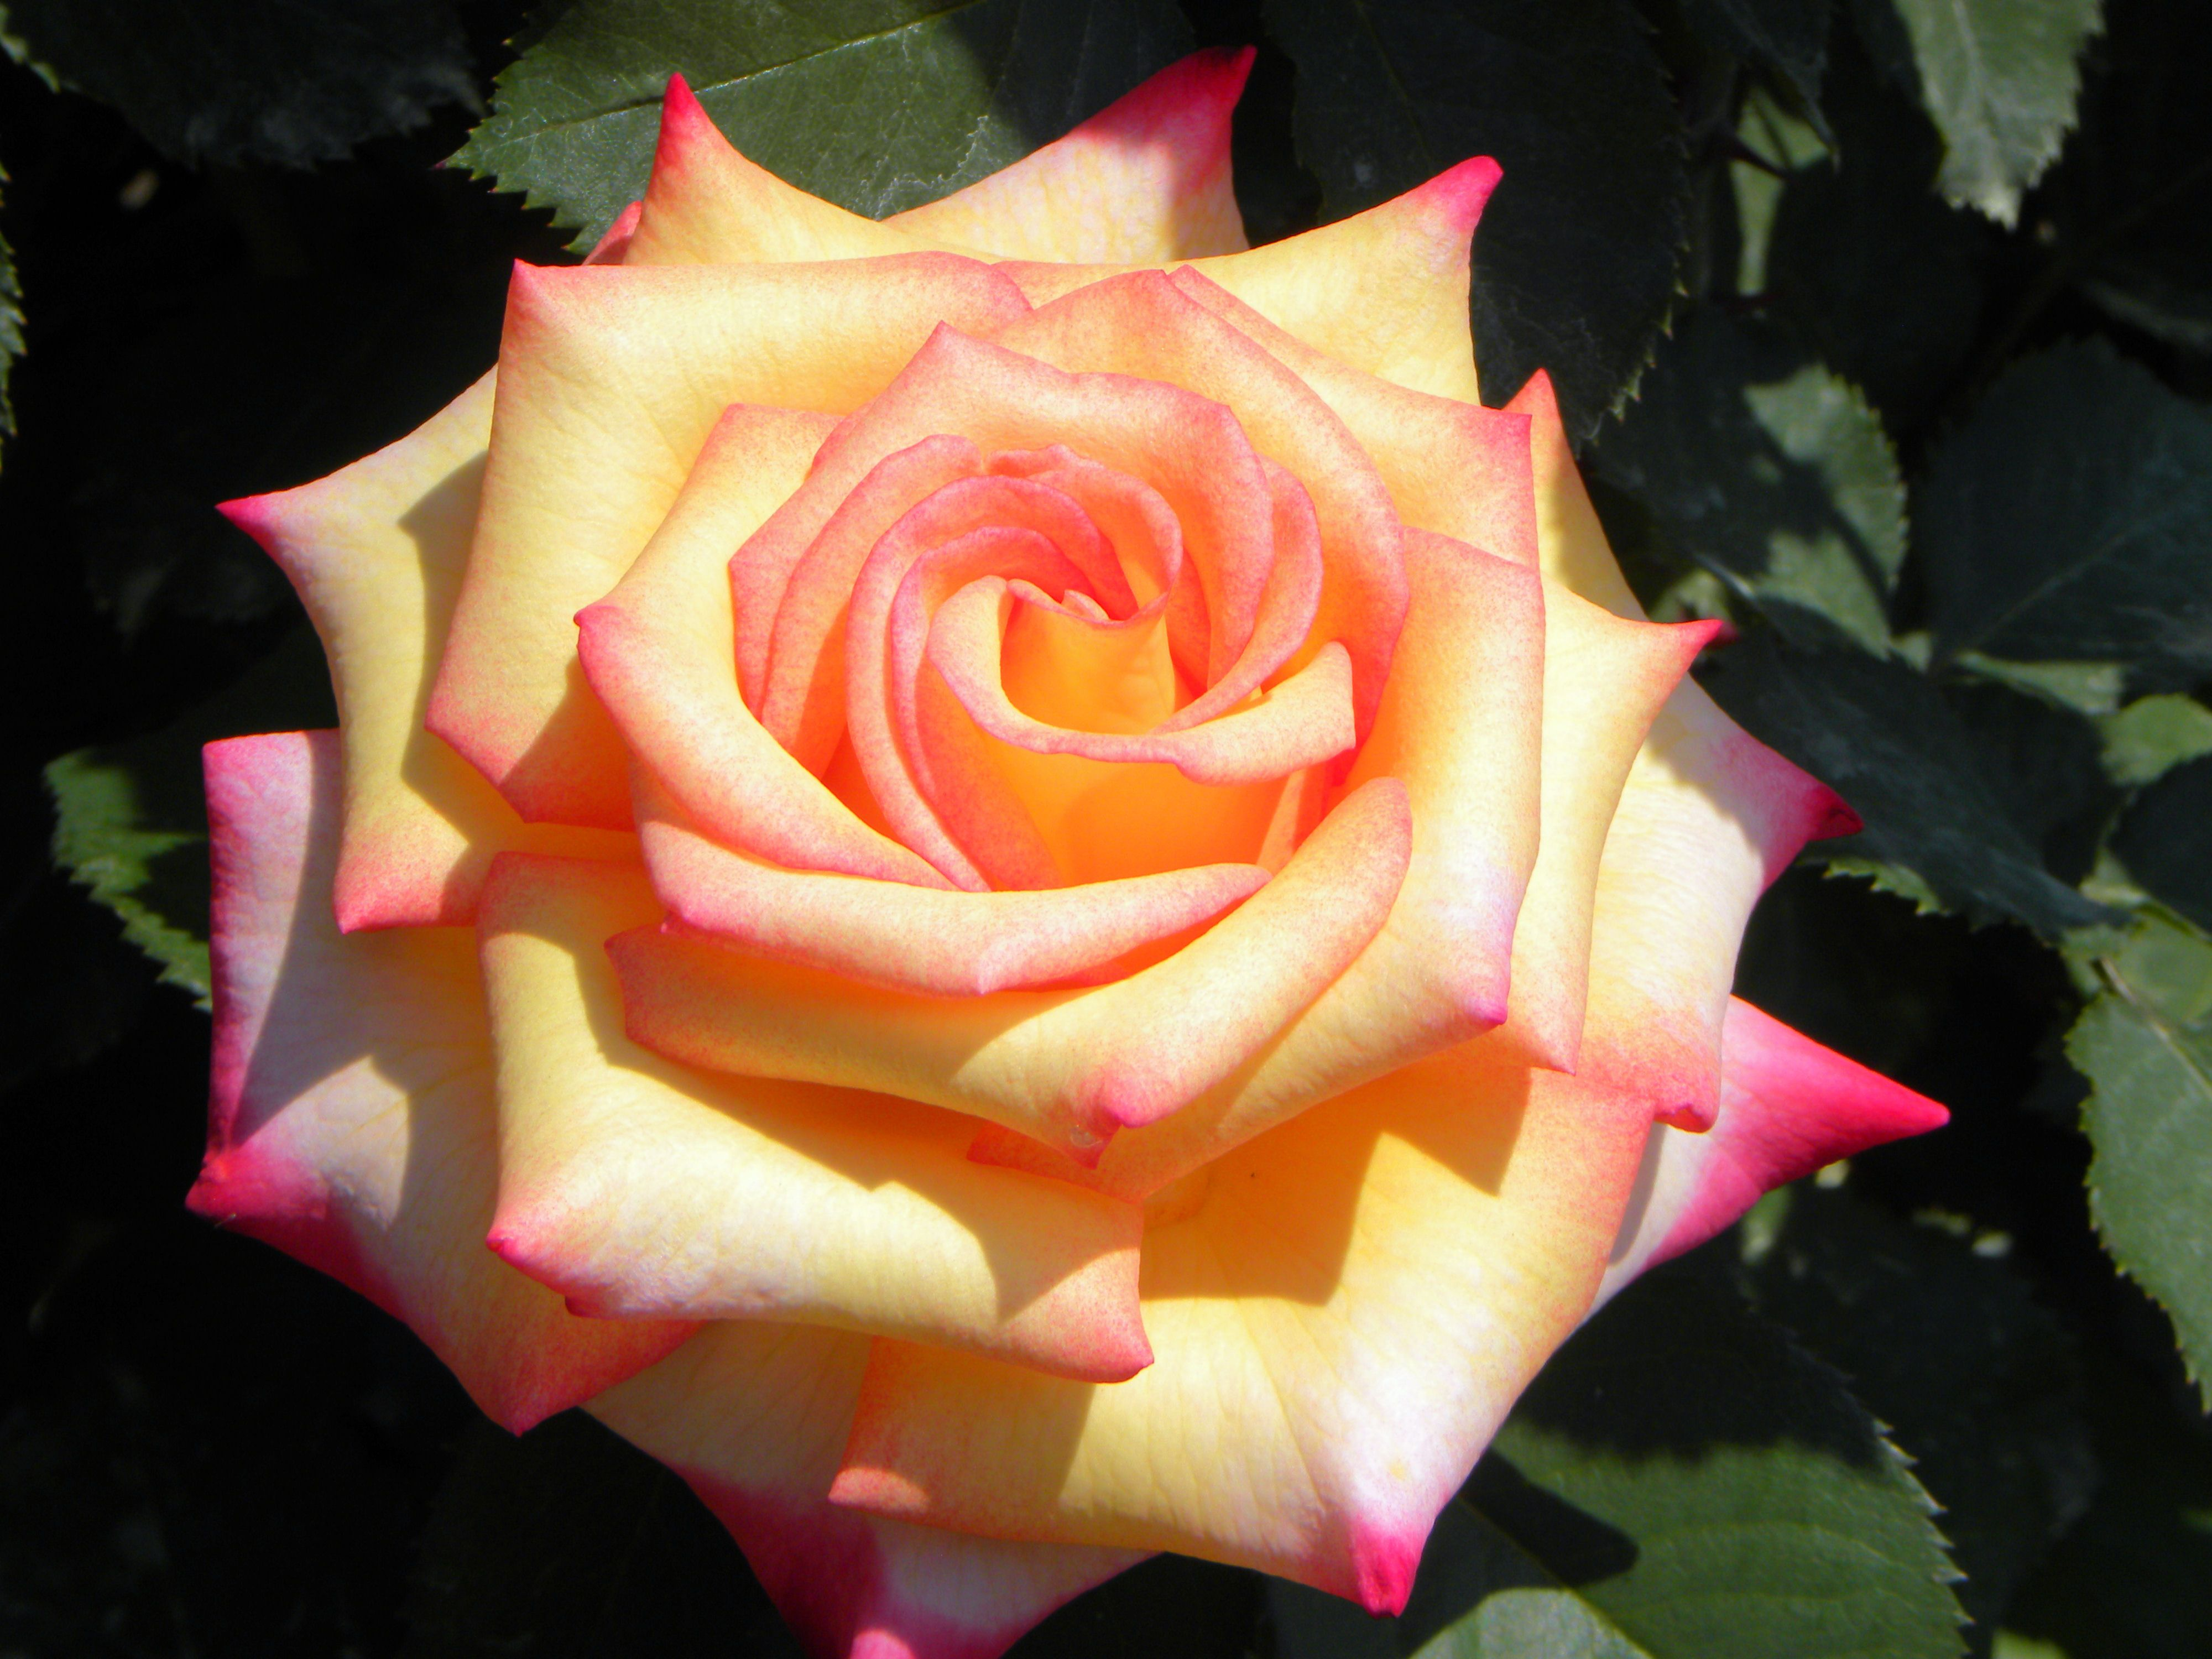 Beauty Edisto Memorial Gardens Orangeburg Sc By Crystal Chapman Memorial Garden Memories Rose